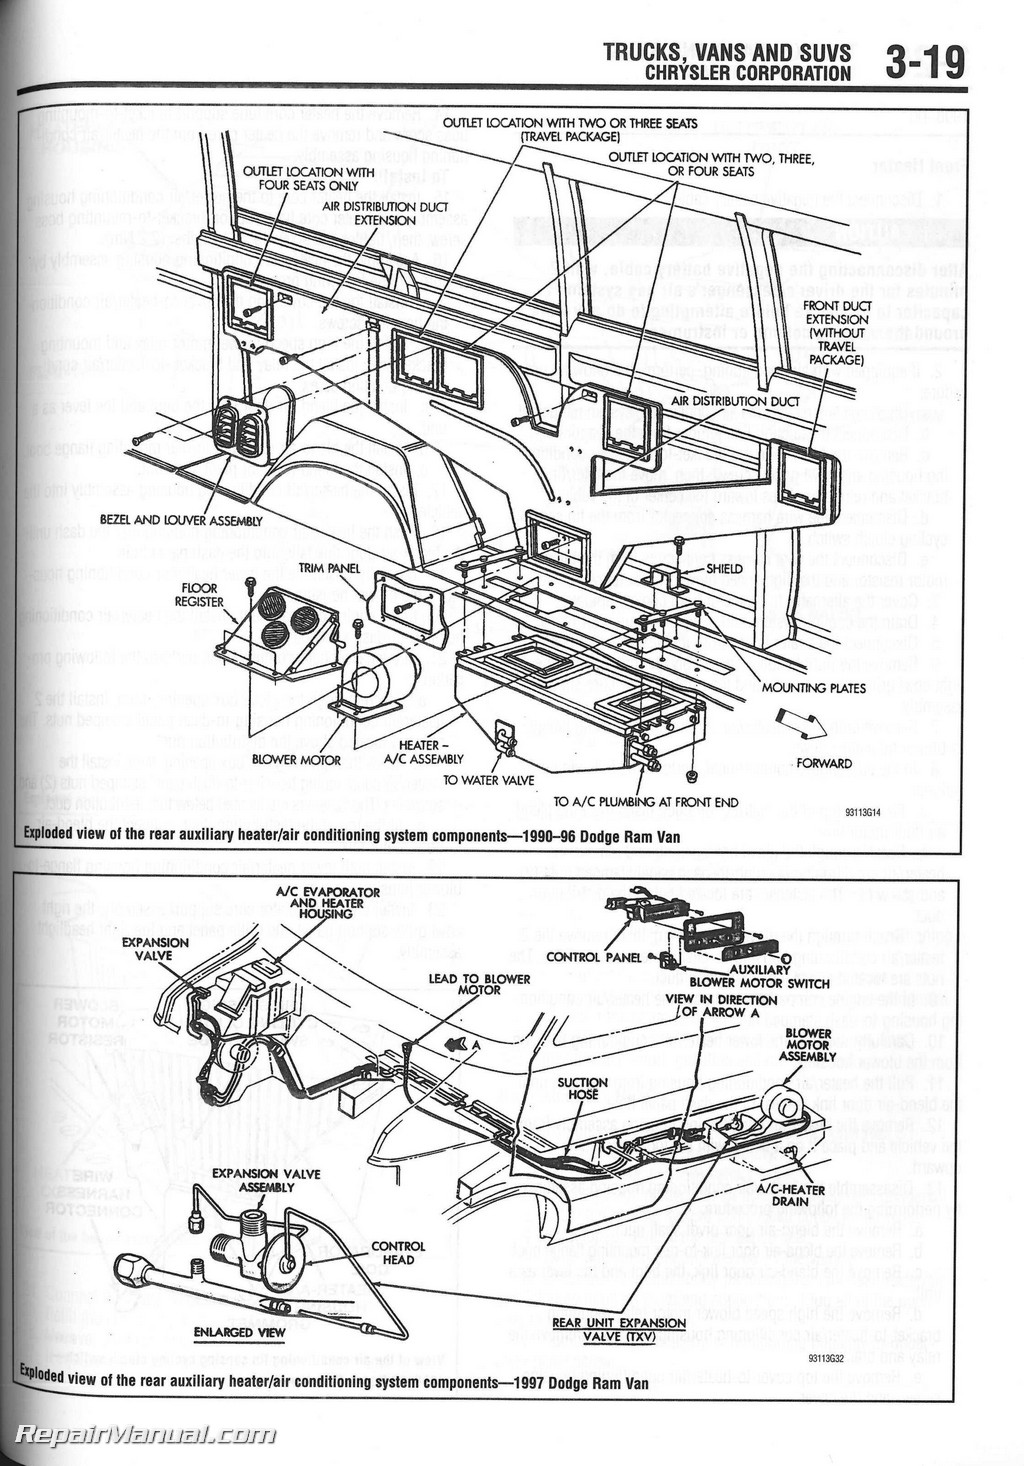 jeep yj fuel gauge wiring diagram chilton 1990 2000 heater core installation manual  chilton 1990 2000 heater core installation manual